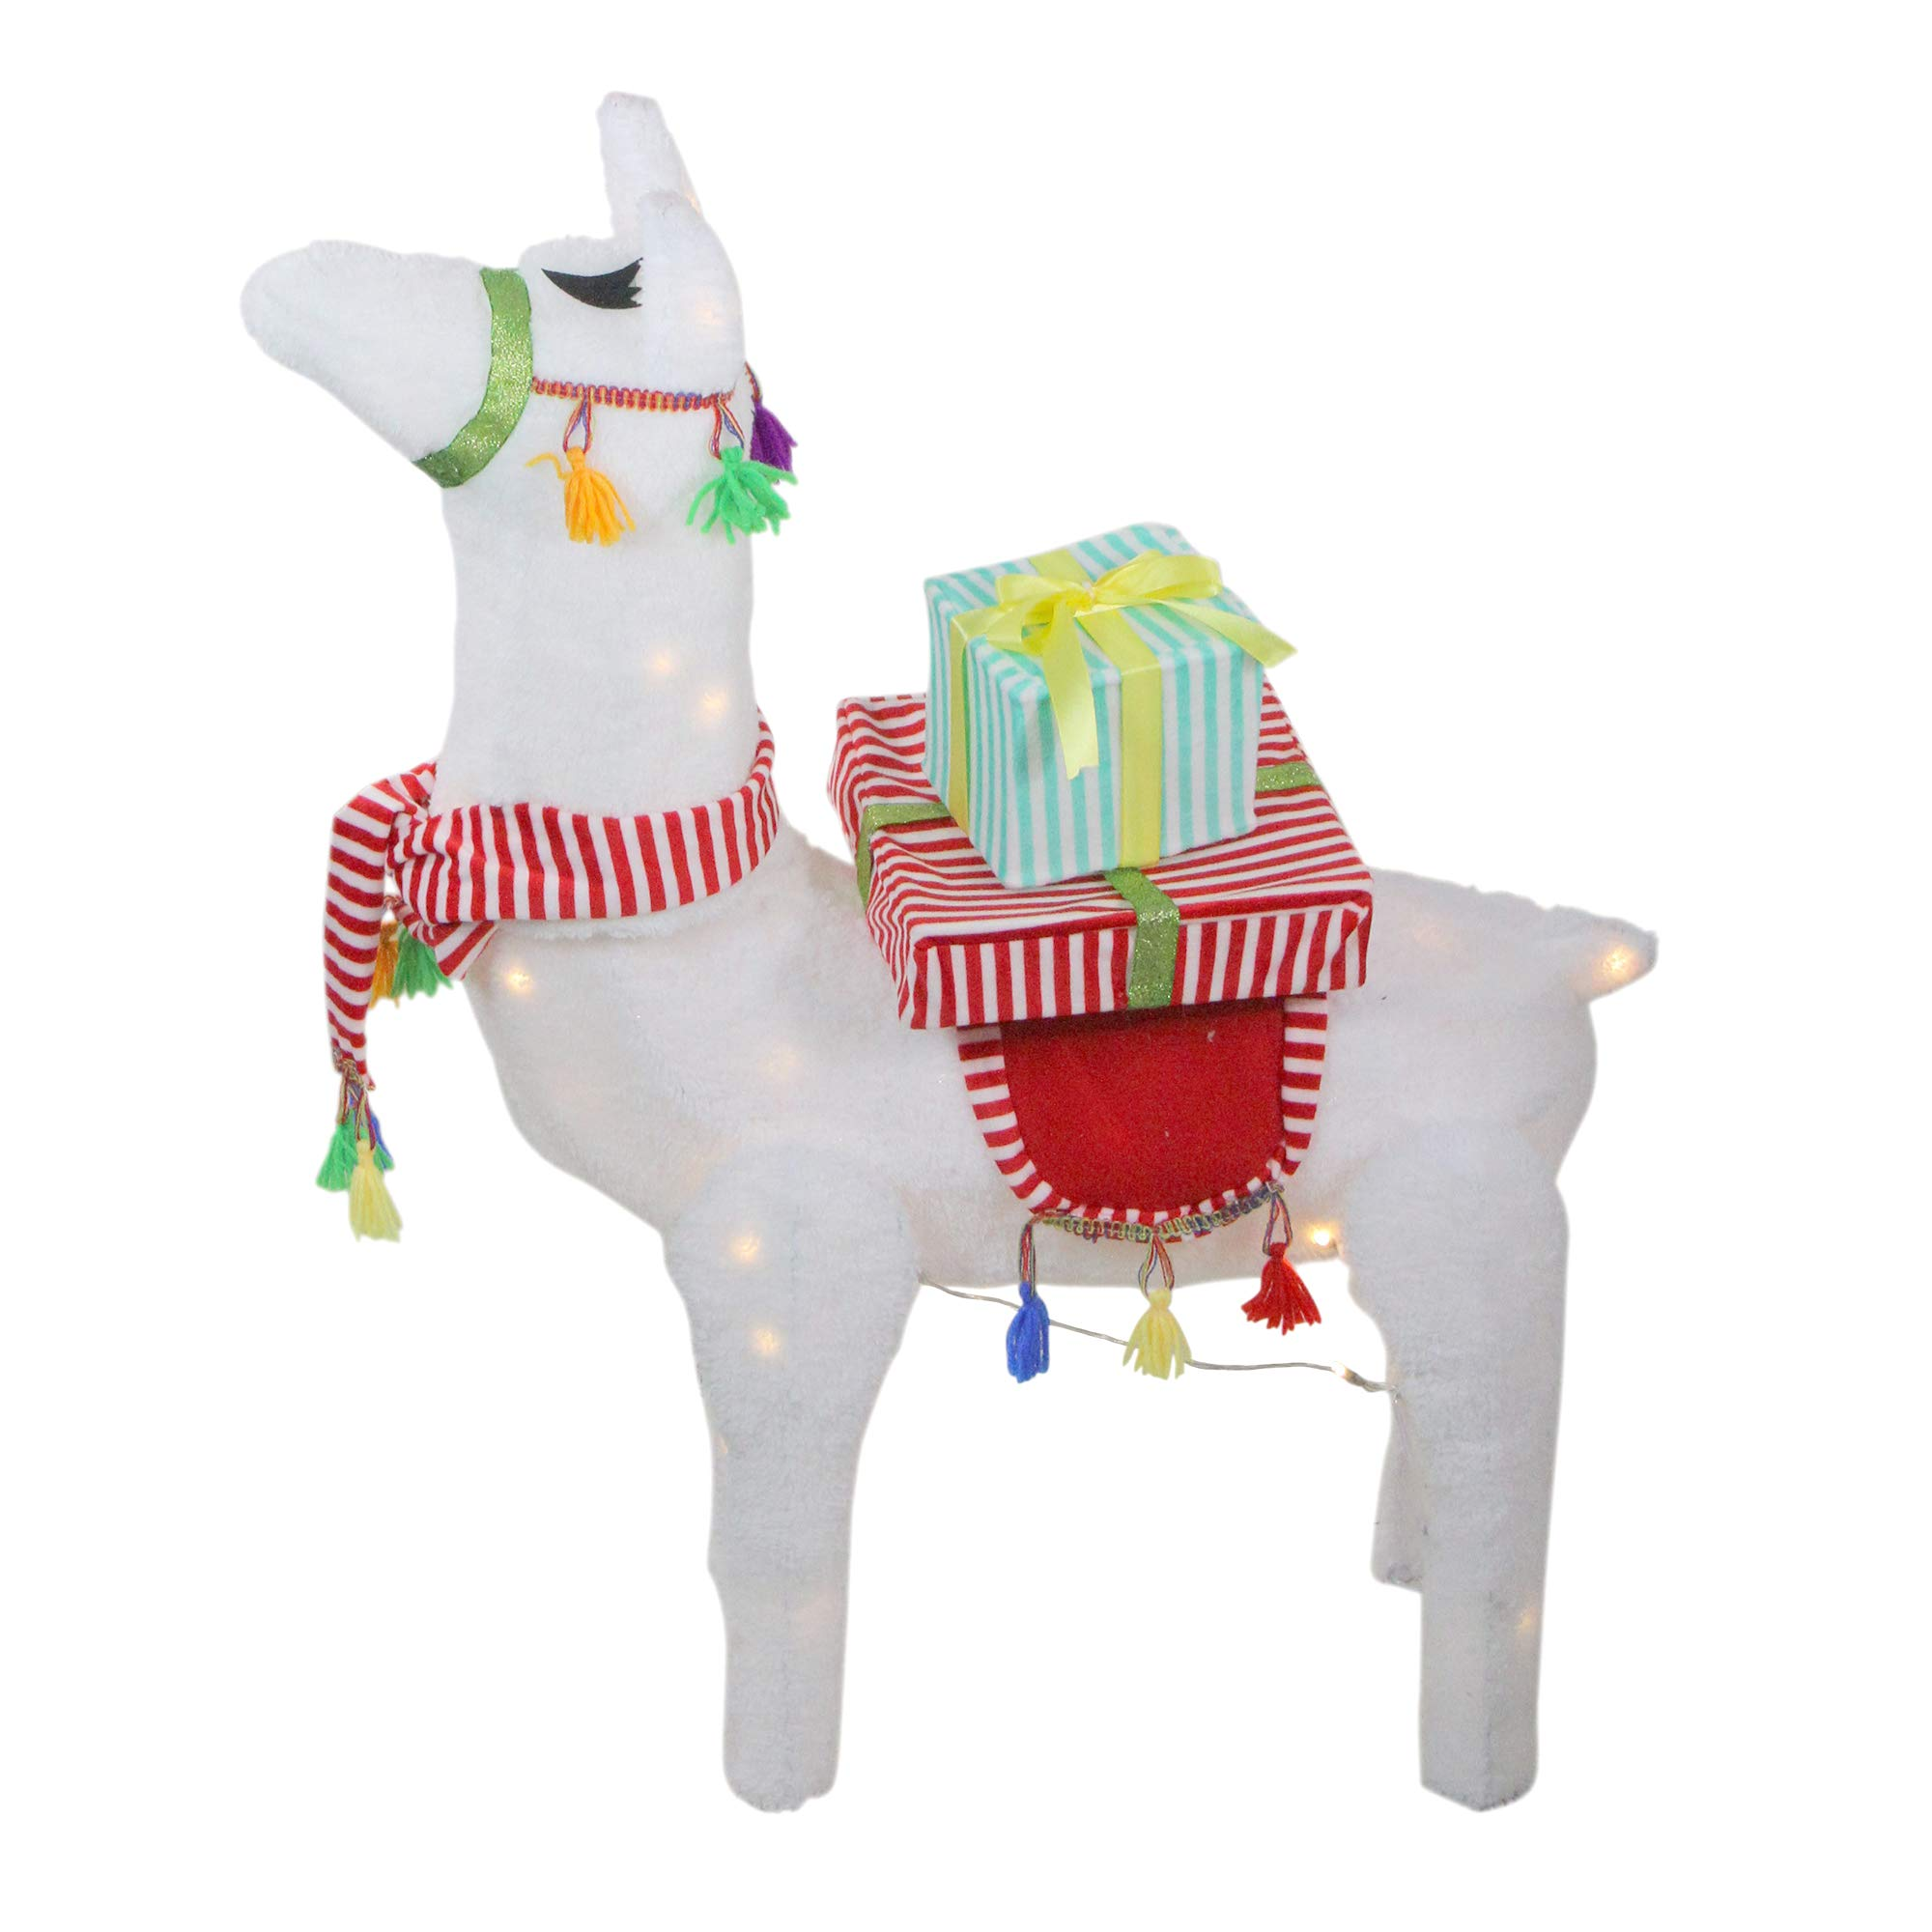 Northlight 31'' LED Lighted Plush Fabric Llama with Gifts Christmas Outdoor Decoration